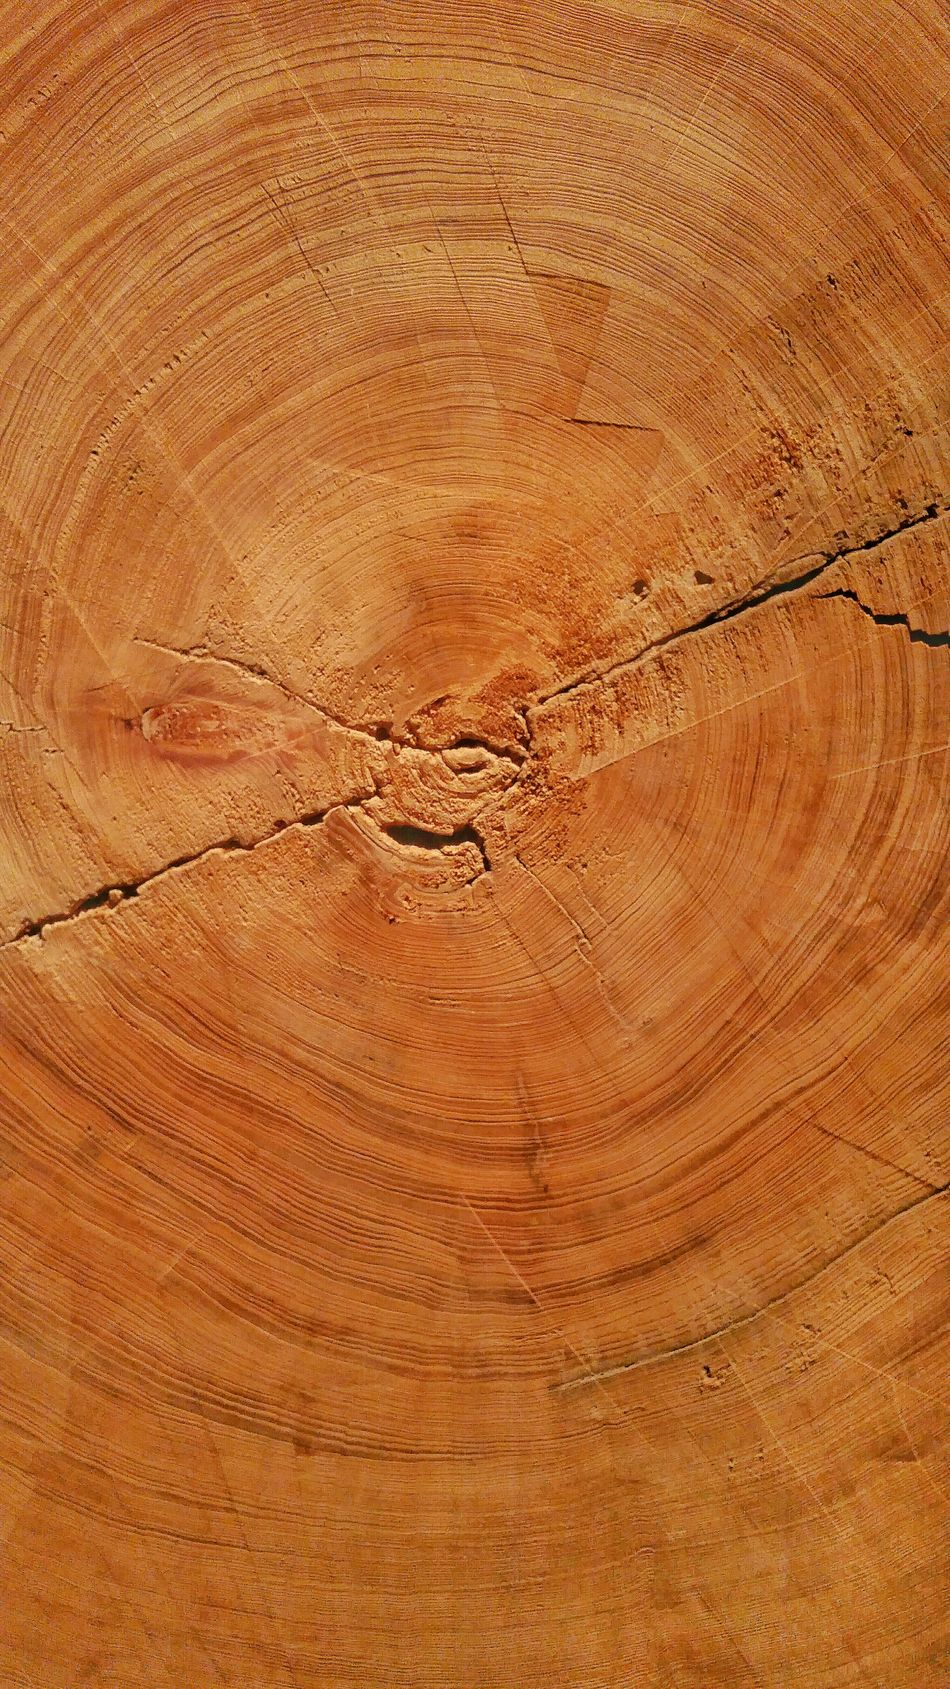 Wood Trees Of Eyeem Tree Cut In Half Cypress Tree 600 Plus Year Old Tree Rings Of A Tree Tree Rings Very Old Tree 1,100 A.D. Never Rots Showcase April